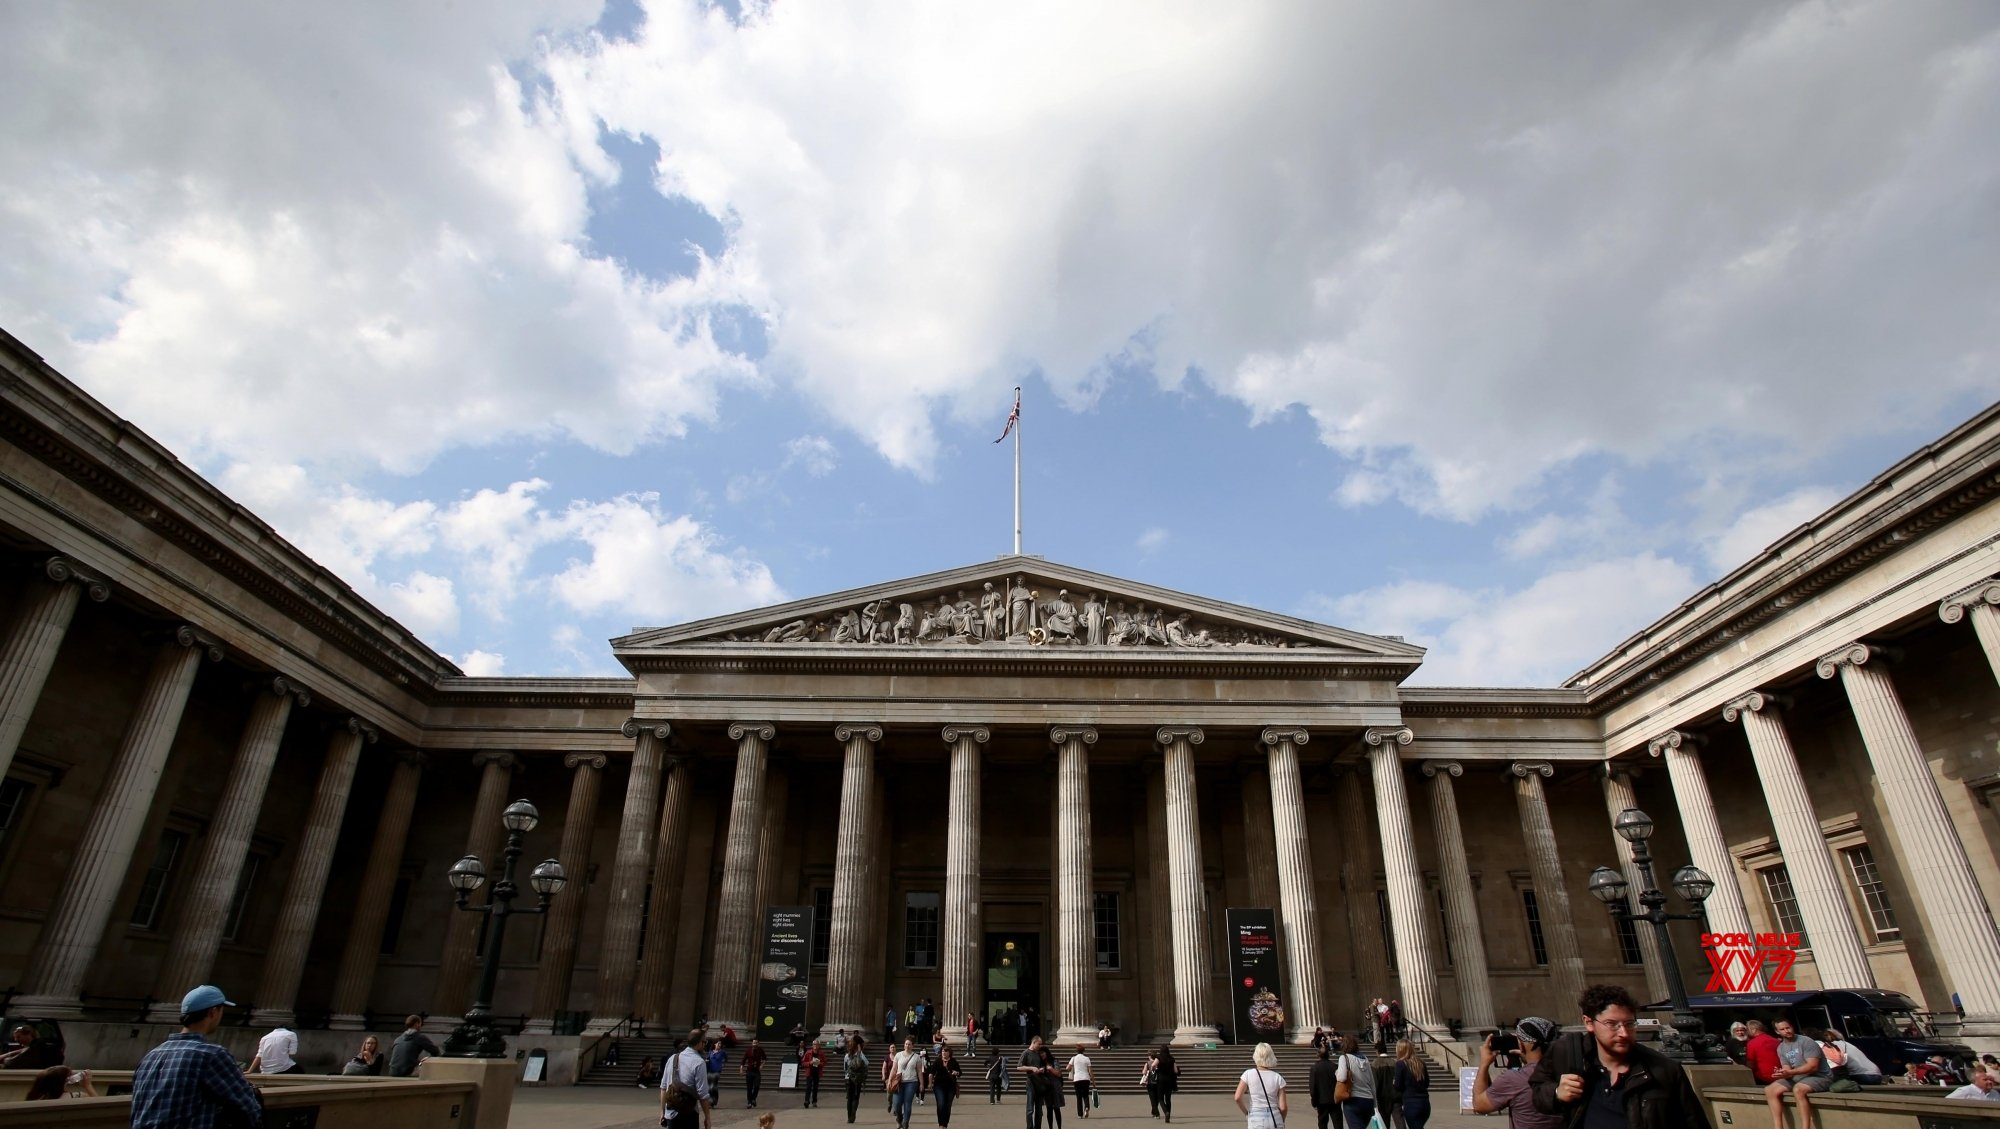 England's museums, galleries won't reopen on July 4